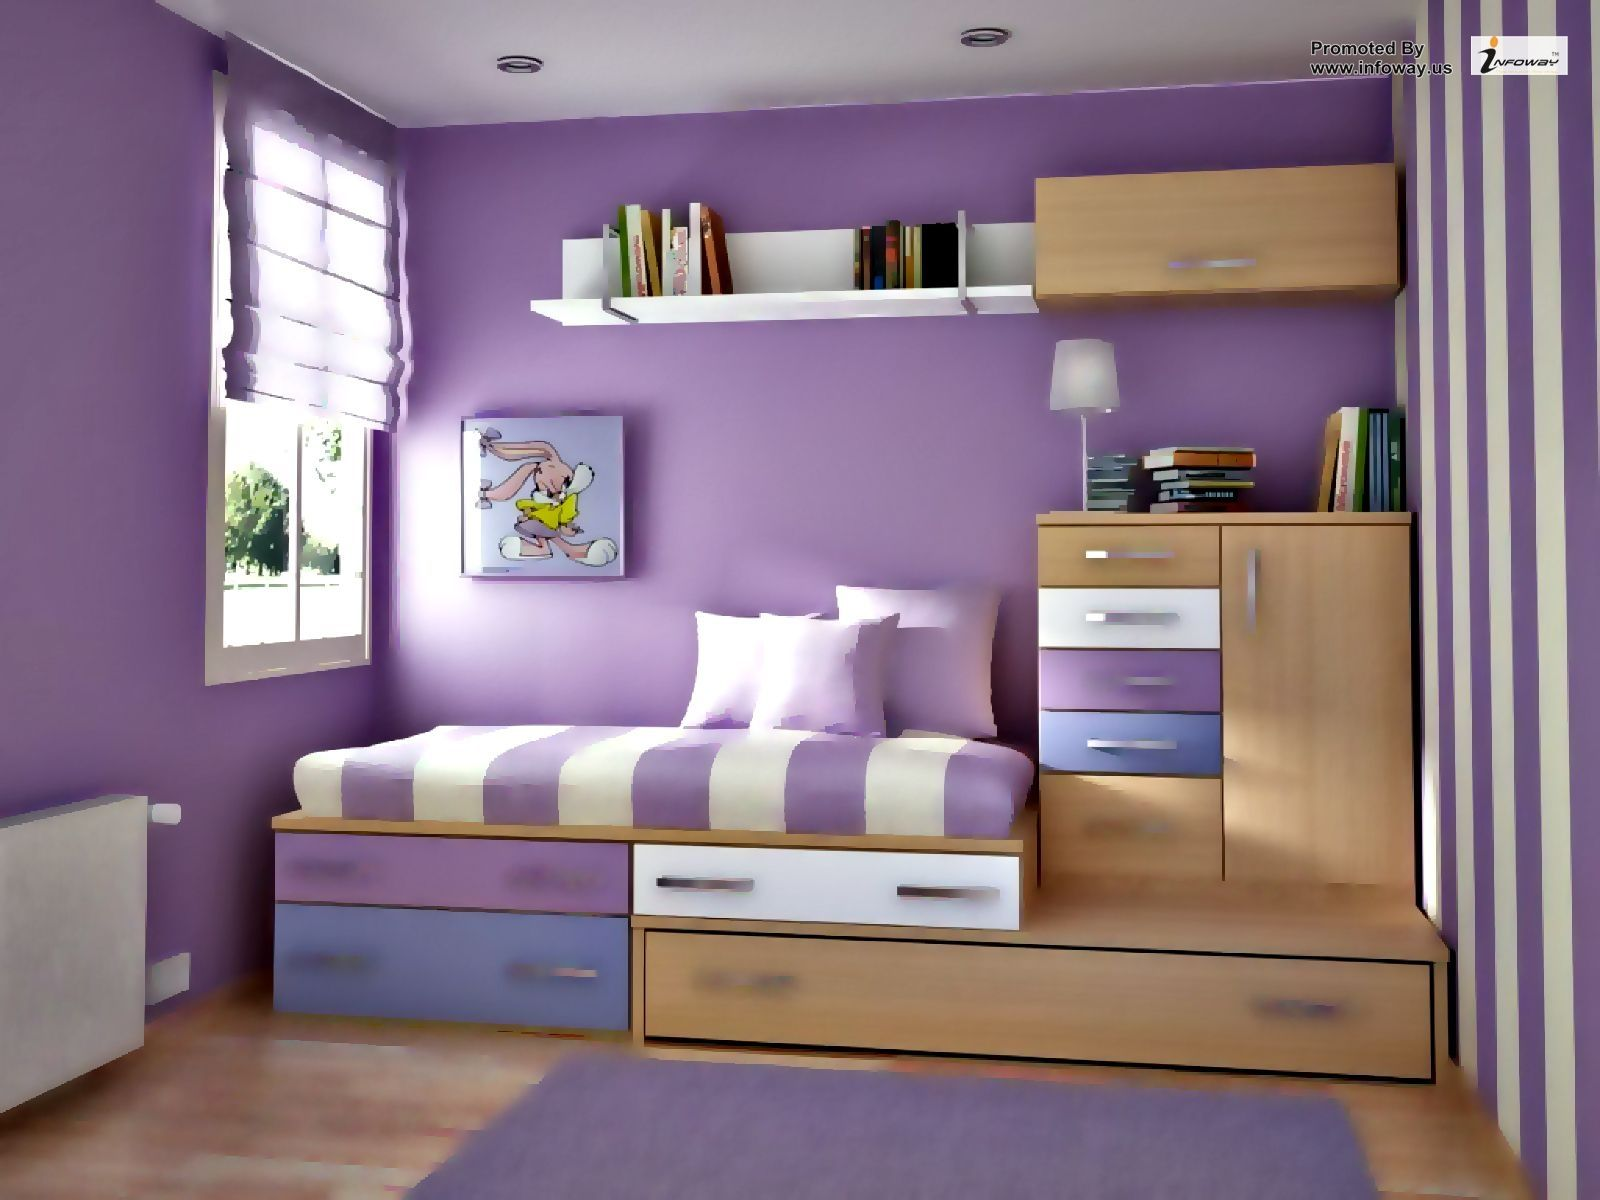 Kids Bedroom Arrangement kids design, arranging furniture in a small living room idea how